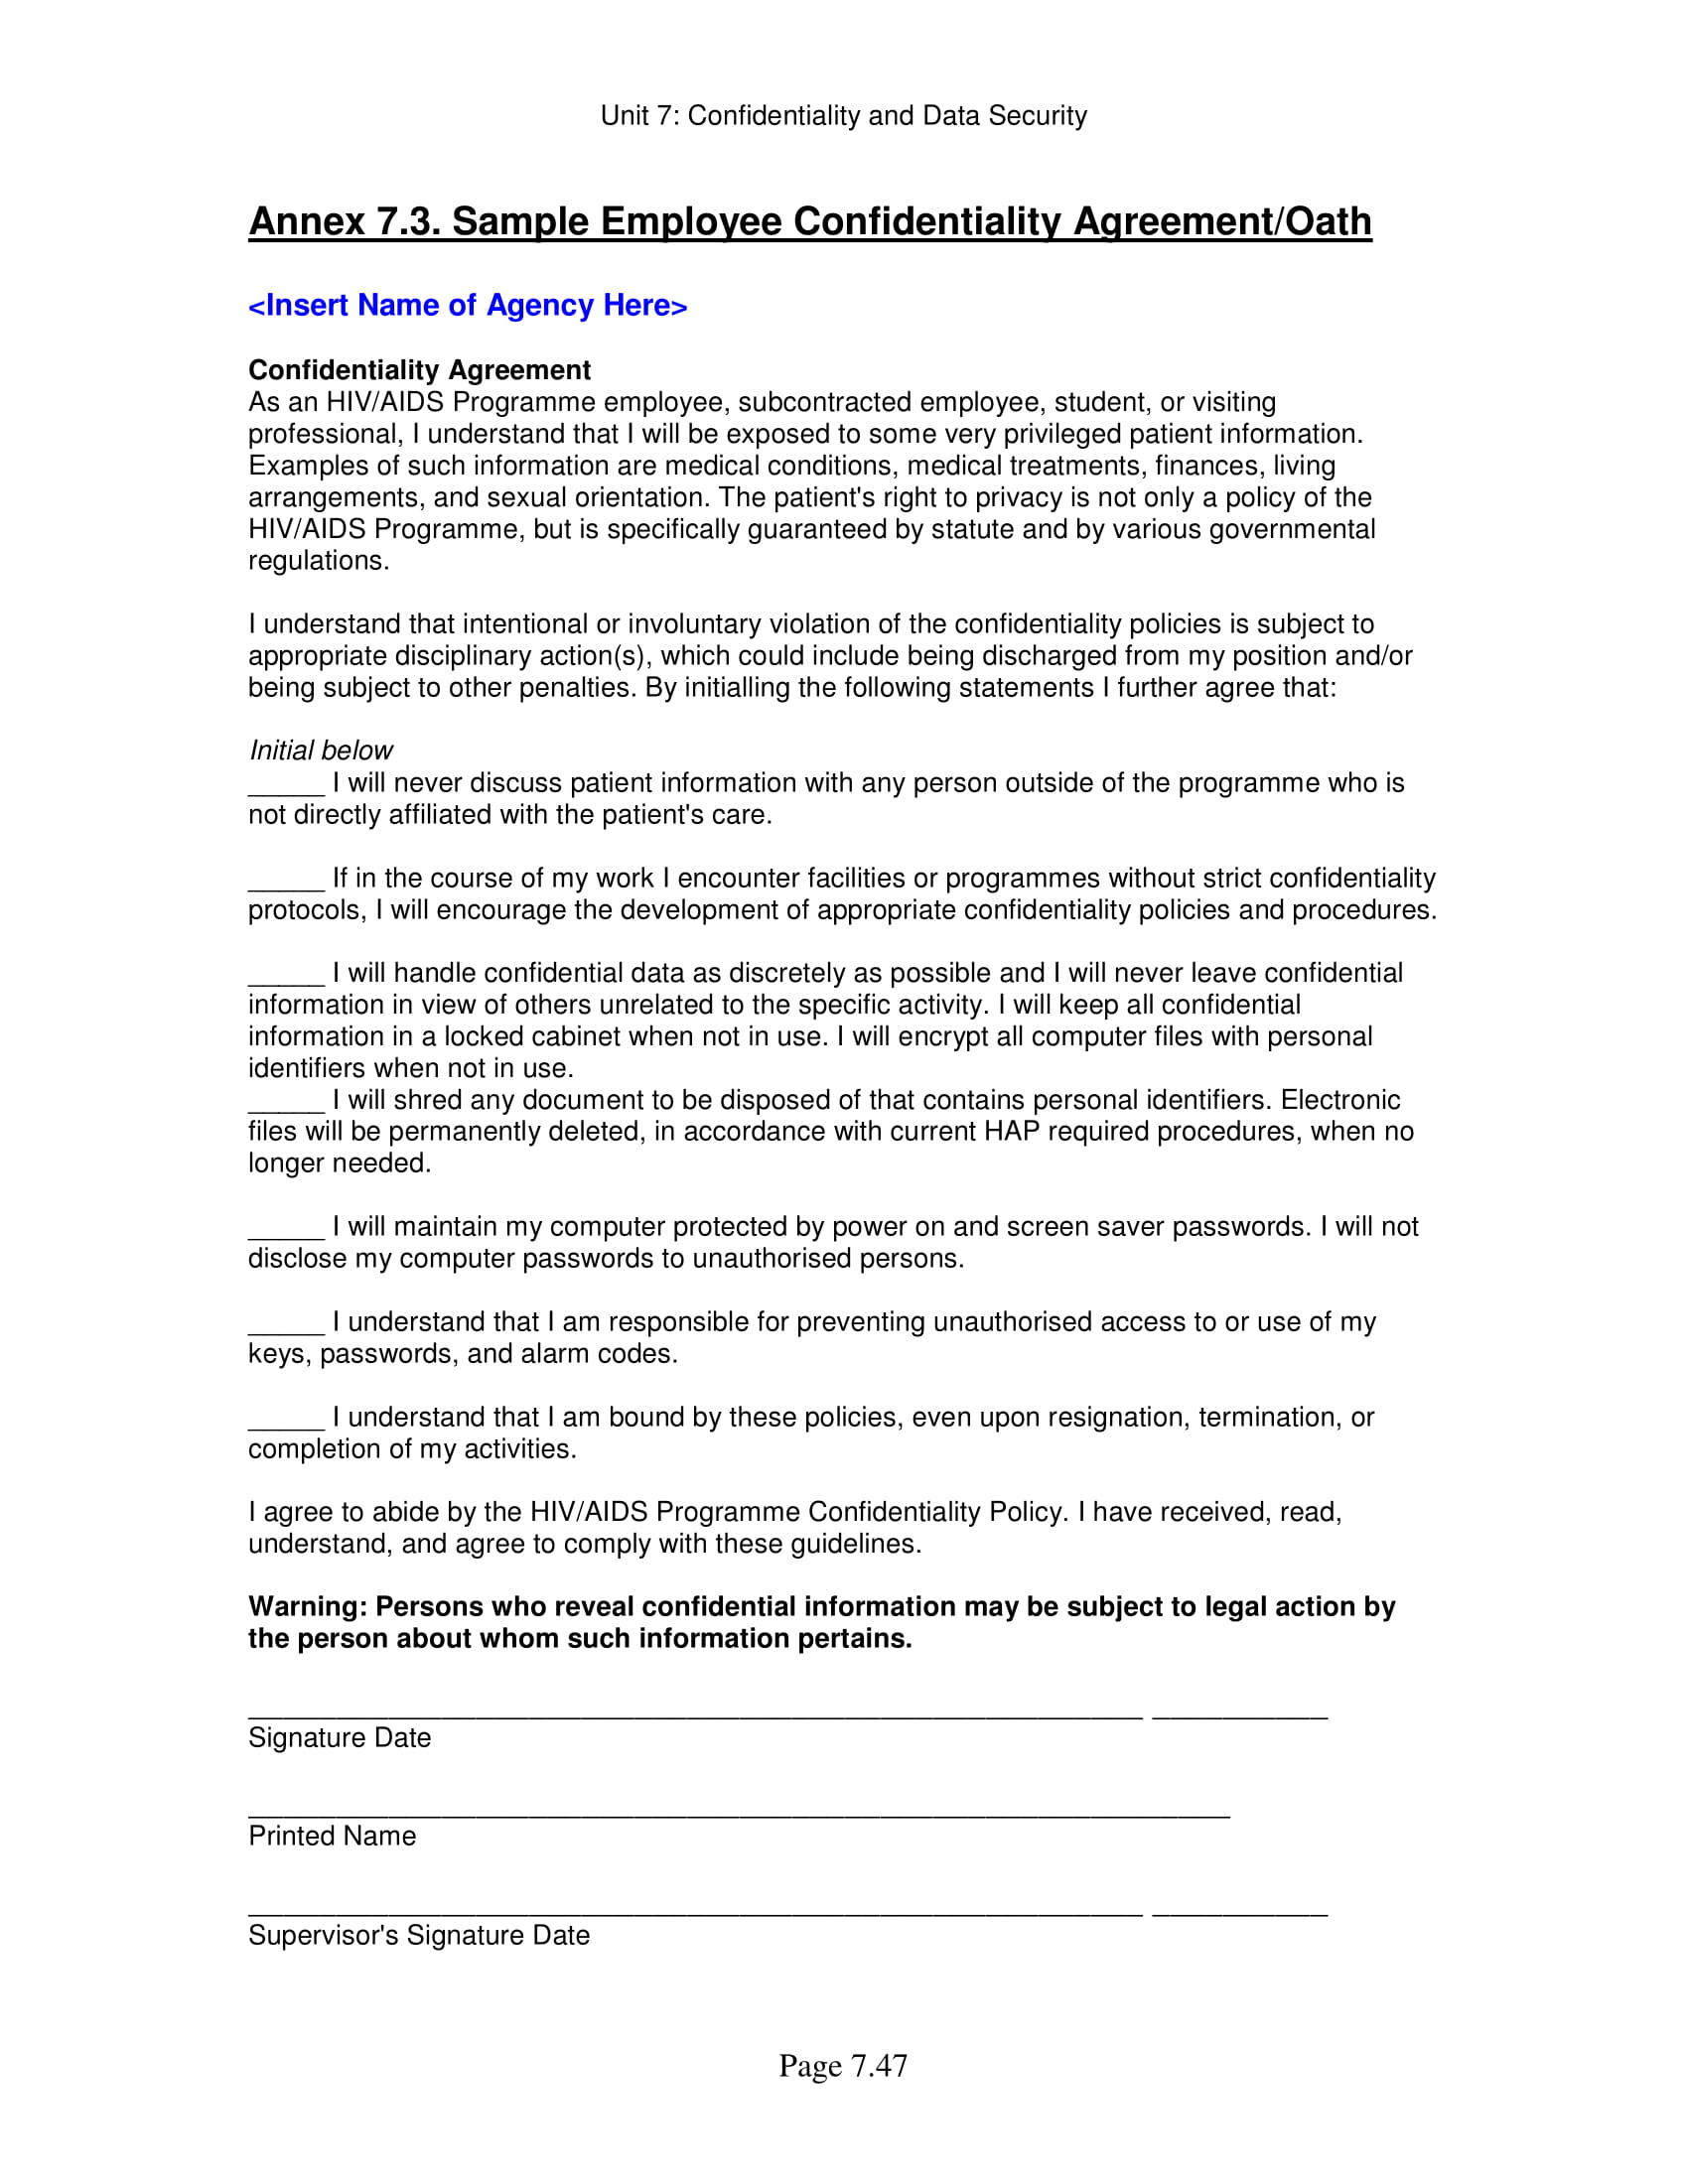 11 Employee Confidentiality Agreement Examples PDF Word